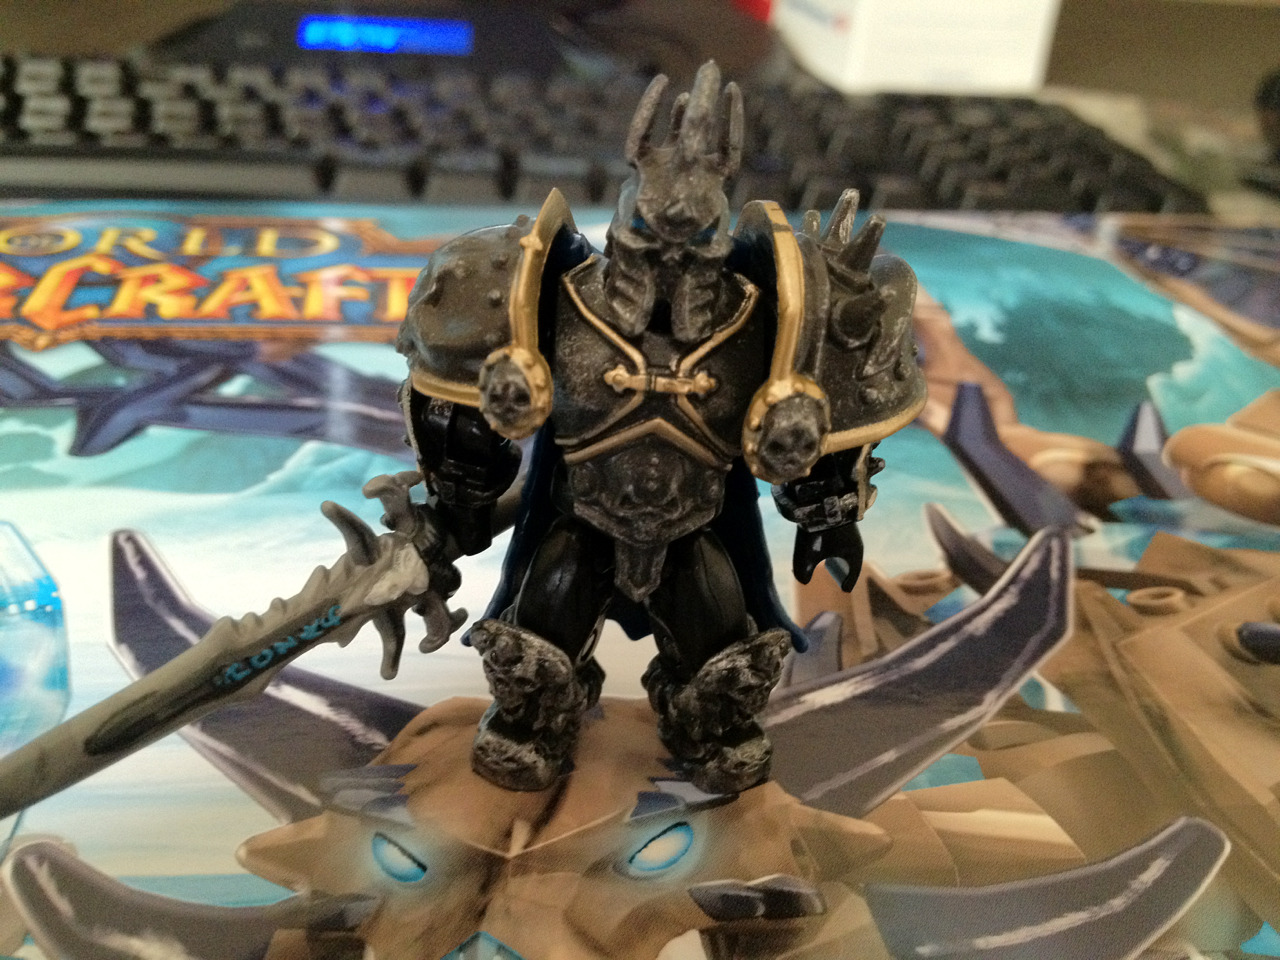 TINY ARTHAS IS THE BEST.